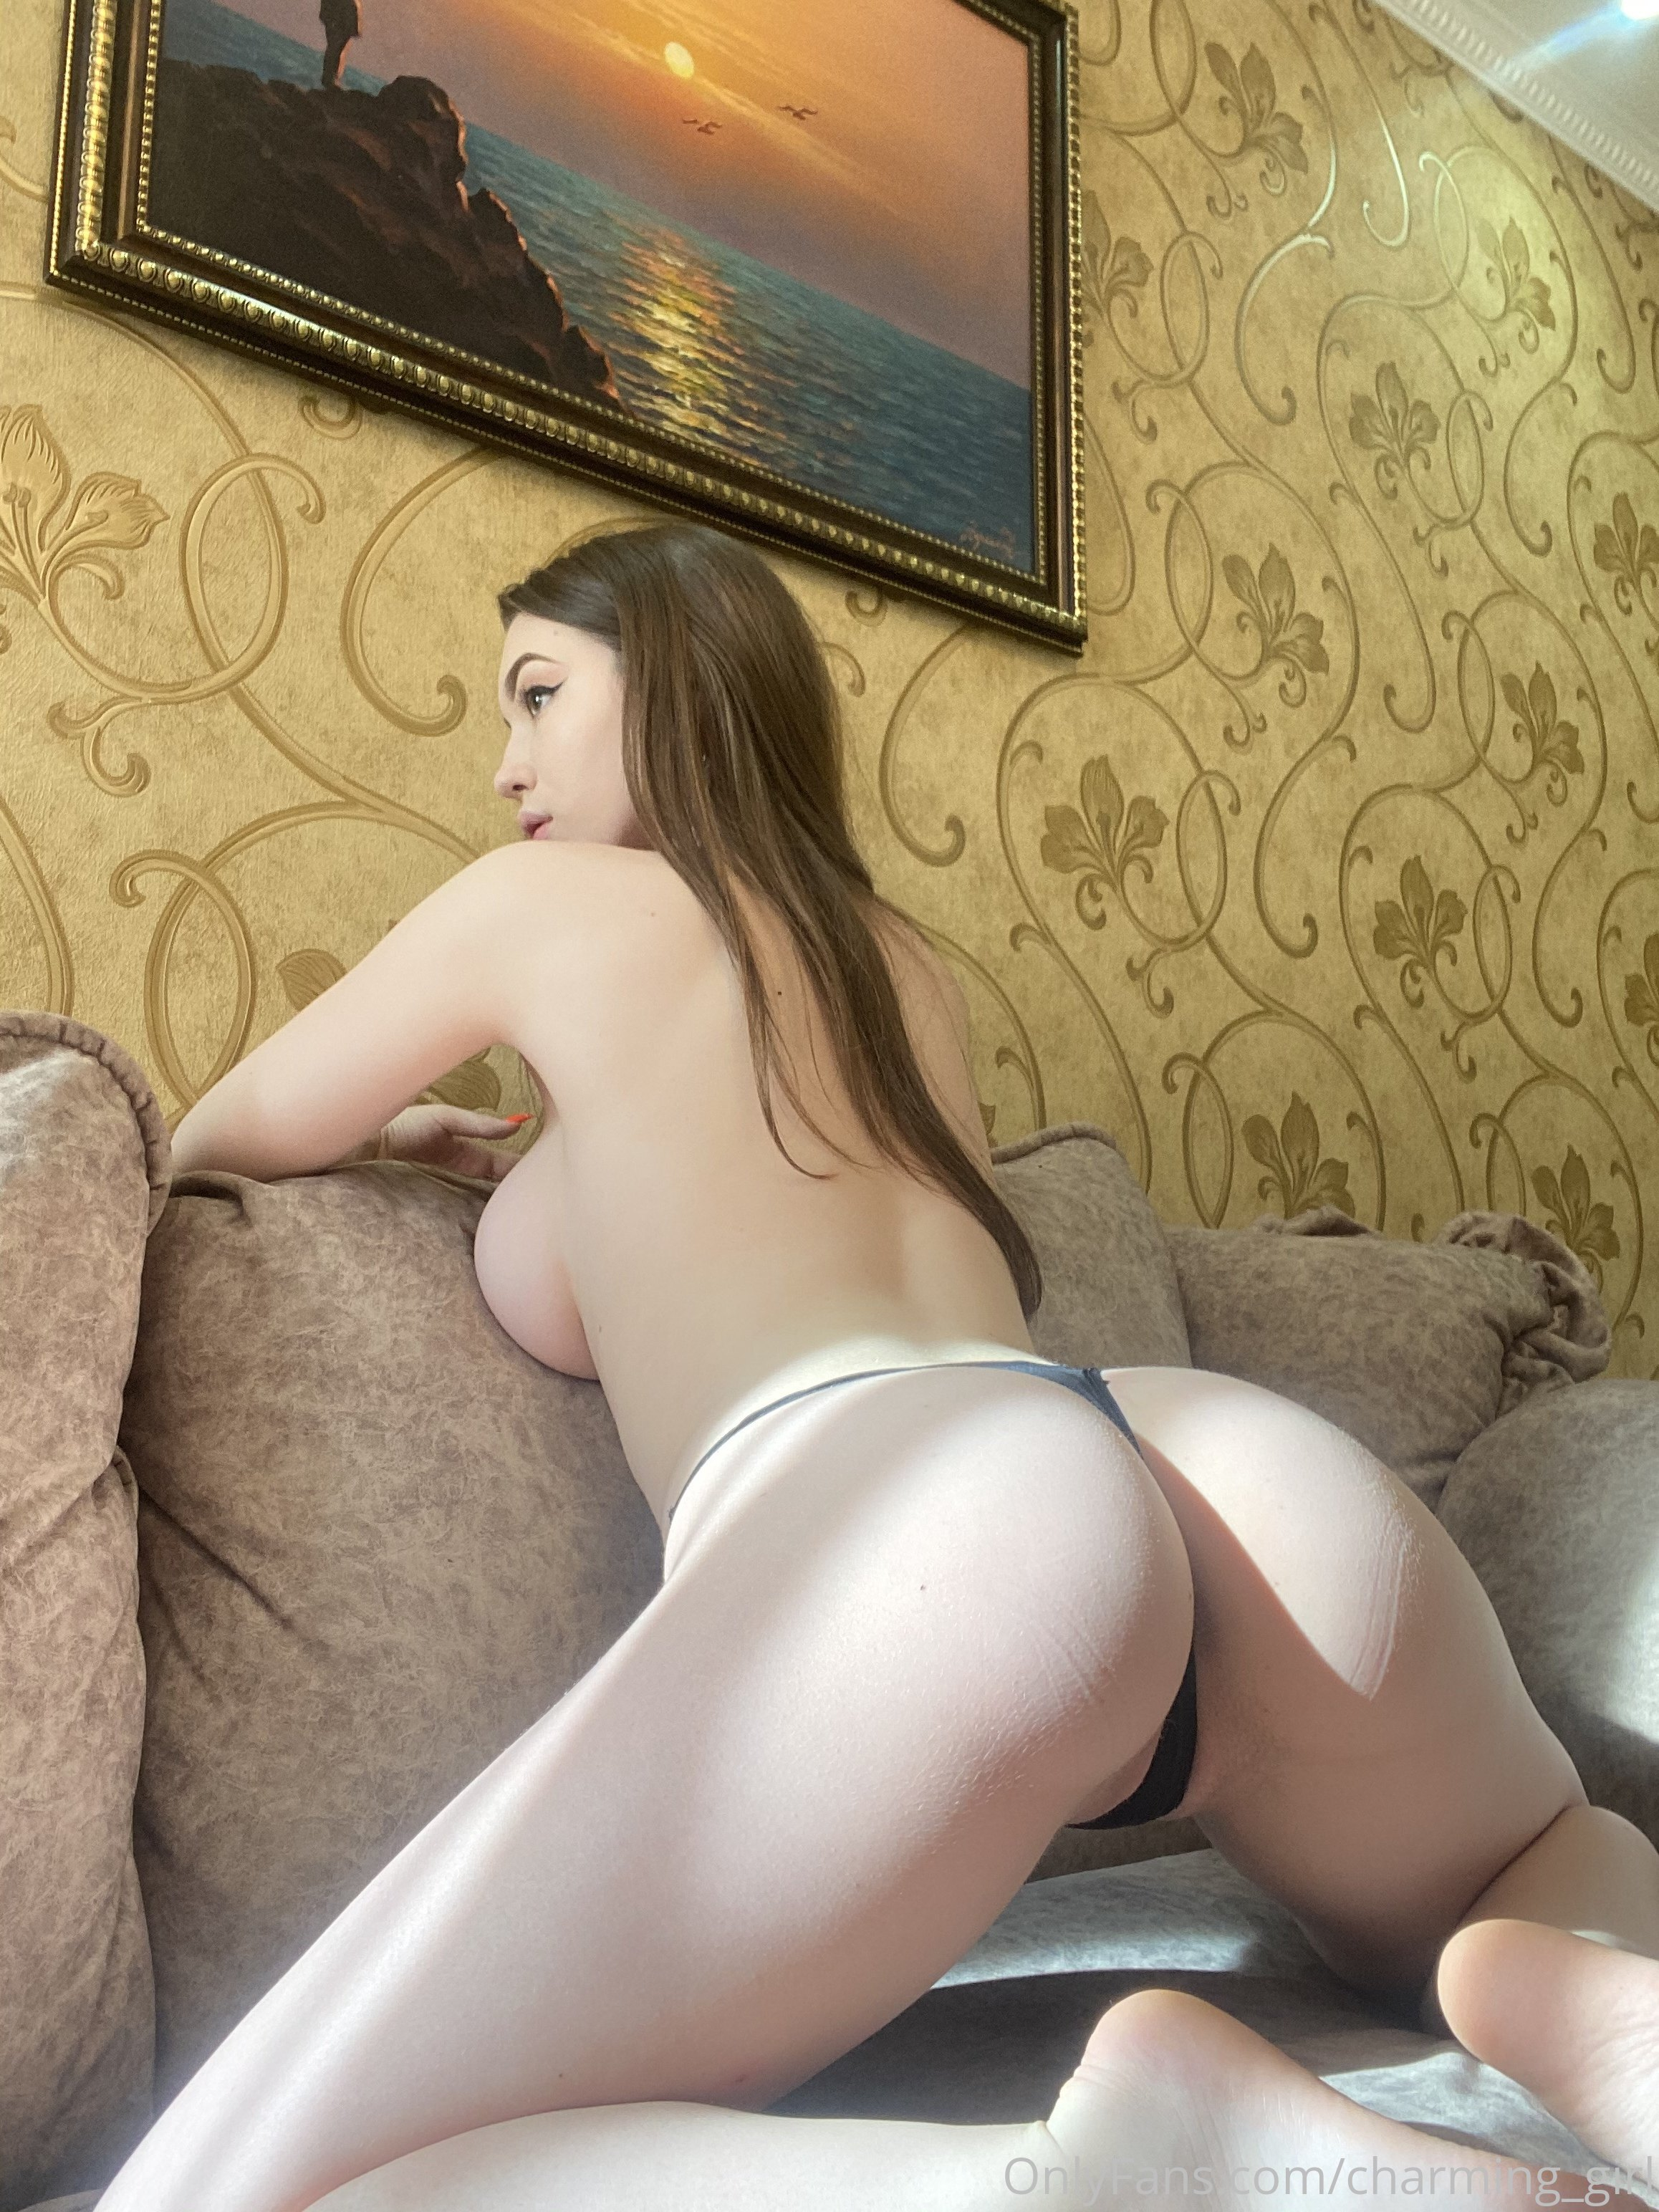 Charming Girl, Onlyfans Nudes Leaks 0025